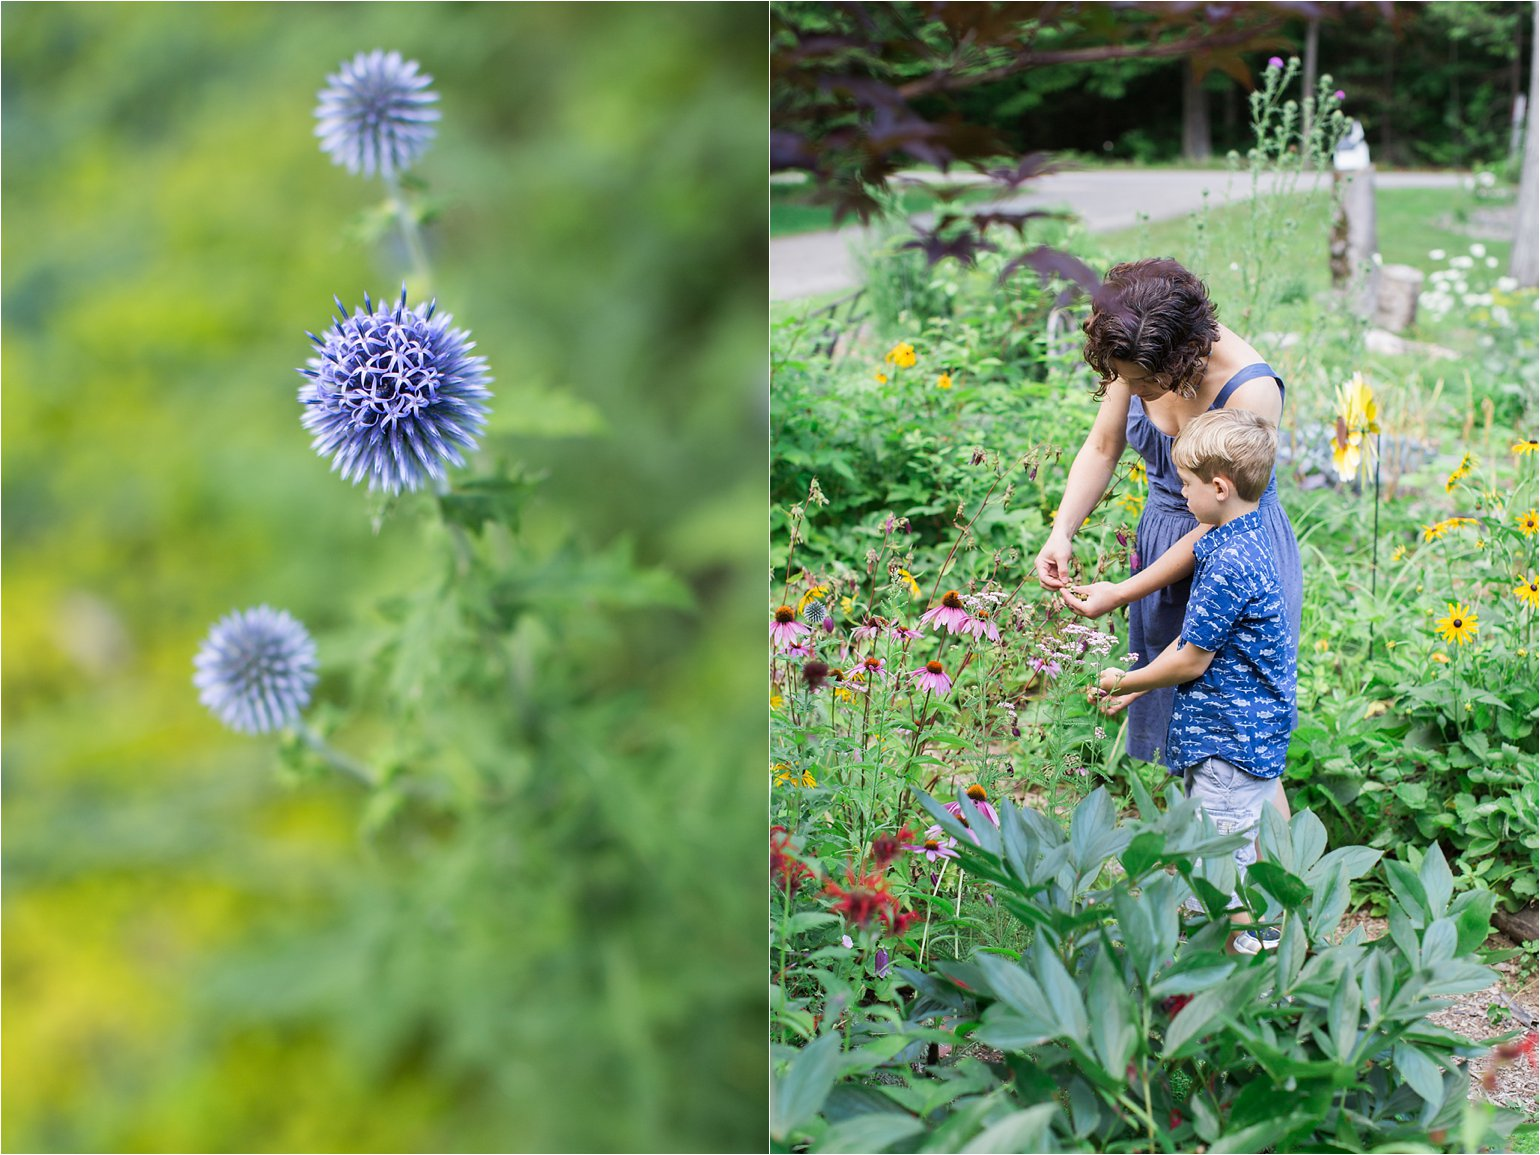 Flowers and Mother and Son Gardening © 2015 Maundy Mitchell